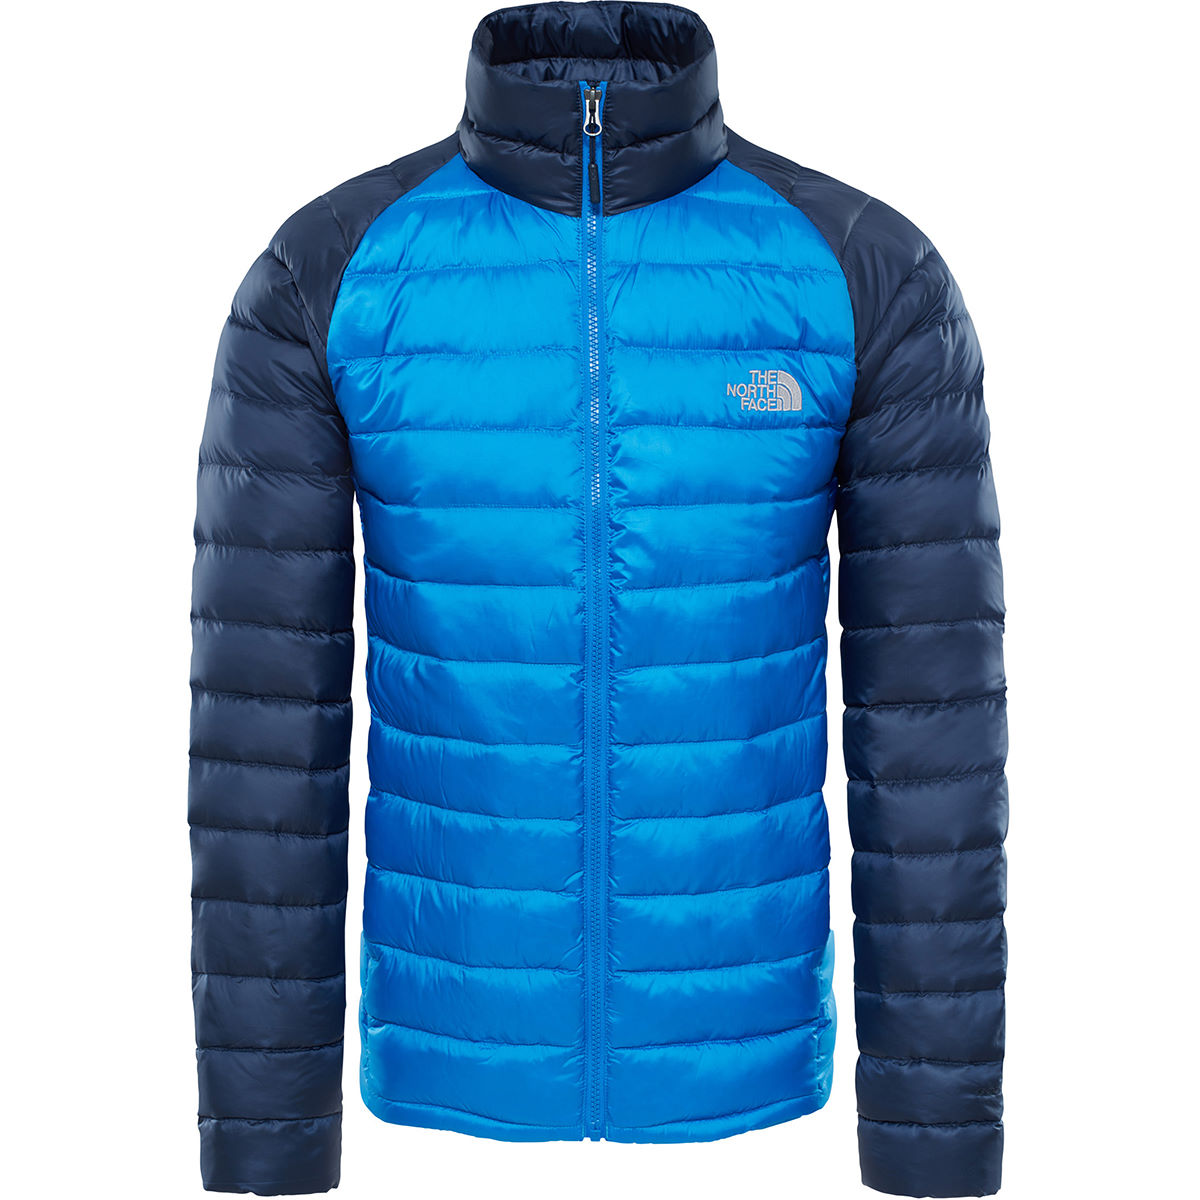 The North Face The North Face Trevail Jacket   Jackets